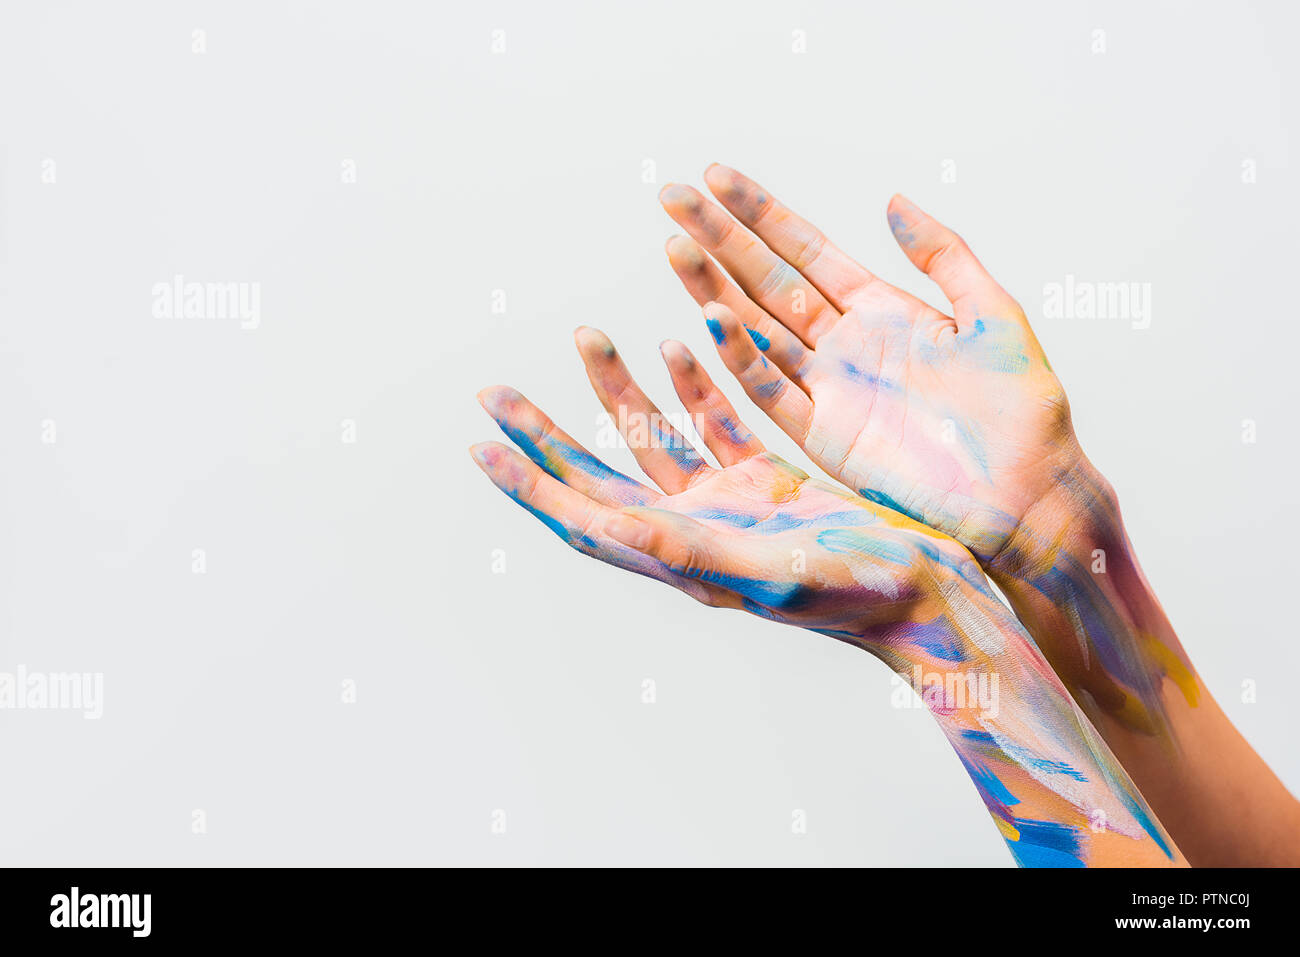 cropped image of girl with colorful bright body art showing hands isolated on white - Stock Image